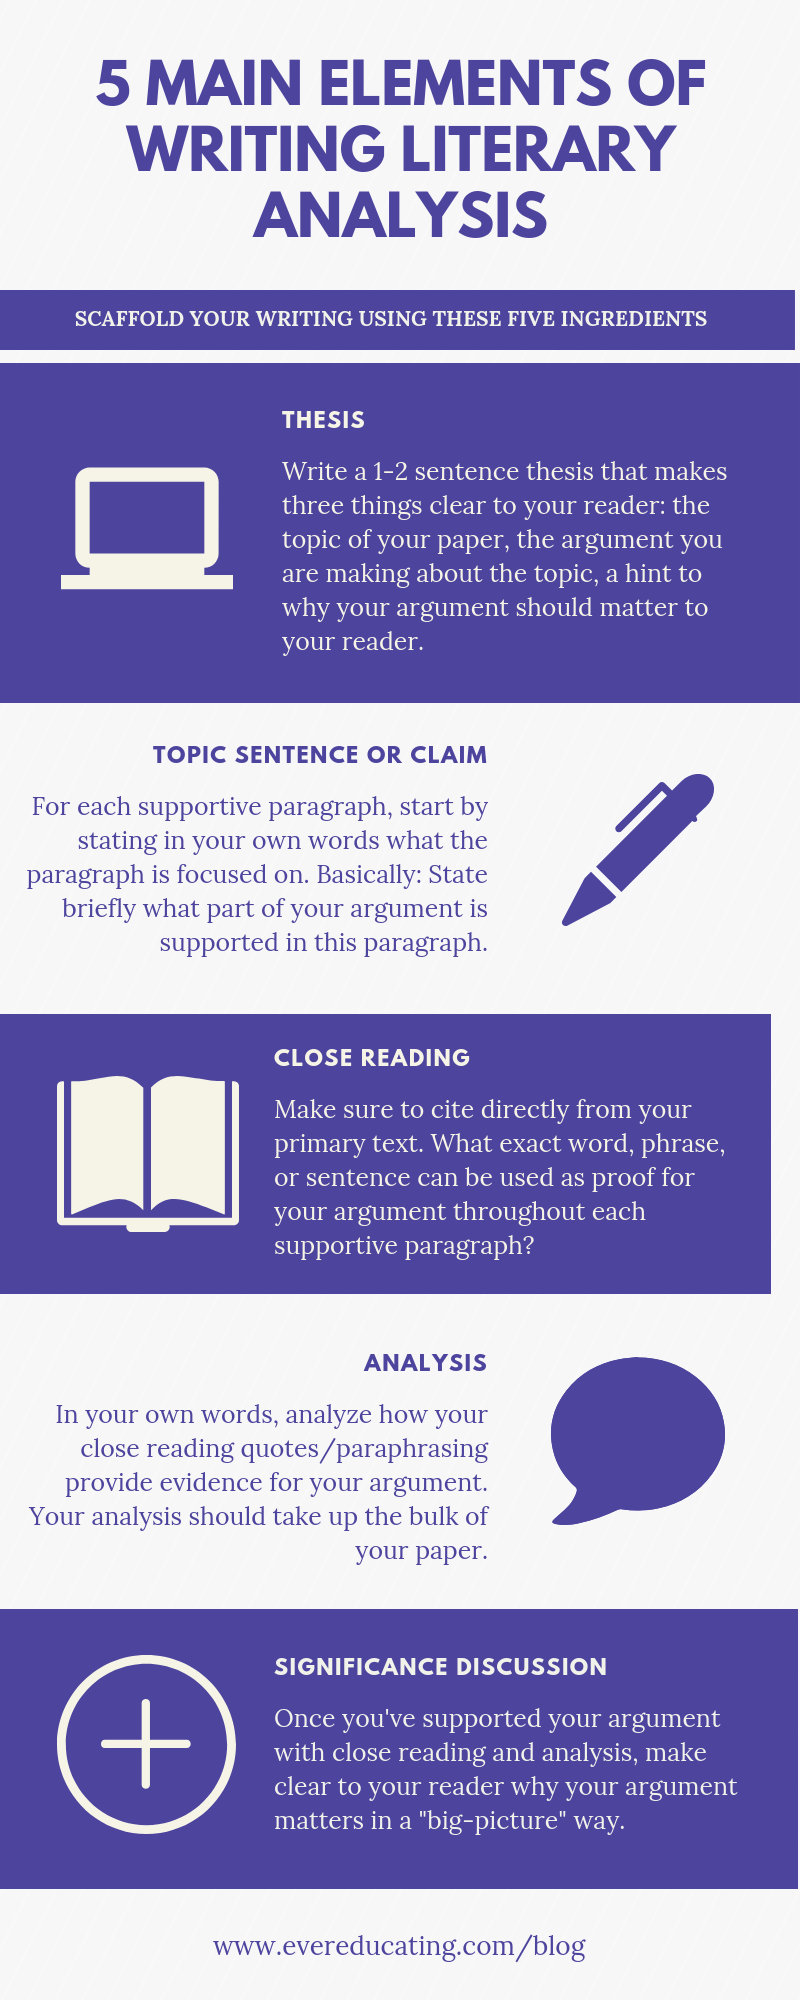 Cheap critical analysis essay writer website for masters emotional intelligence thesis statement